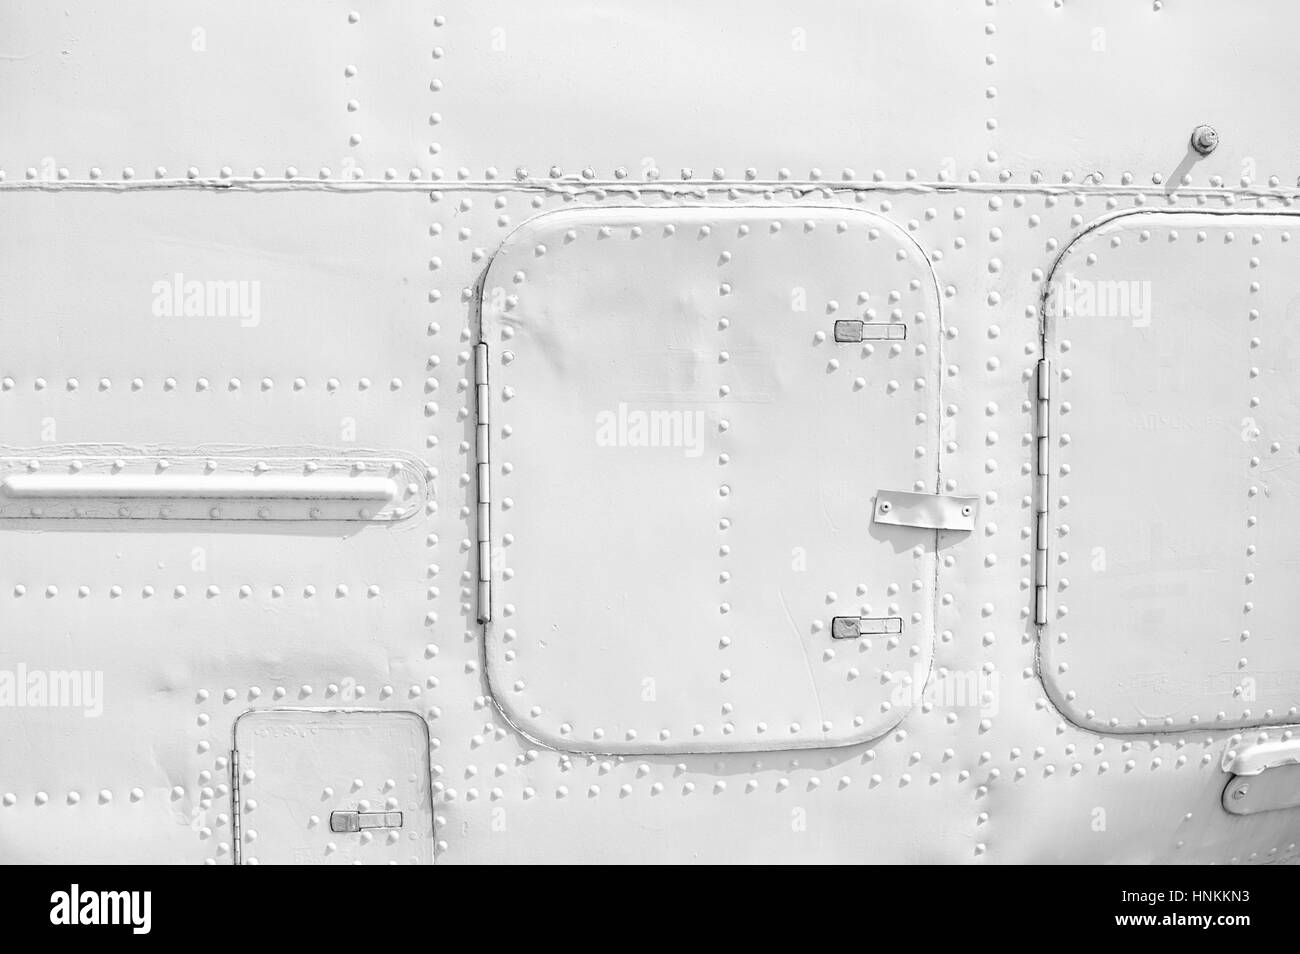 Aircraft metal plating texture with rivets - Stock Image